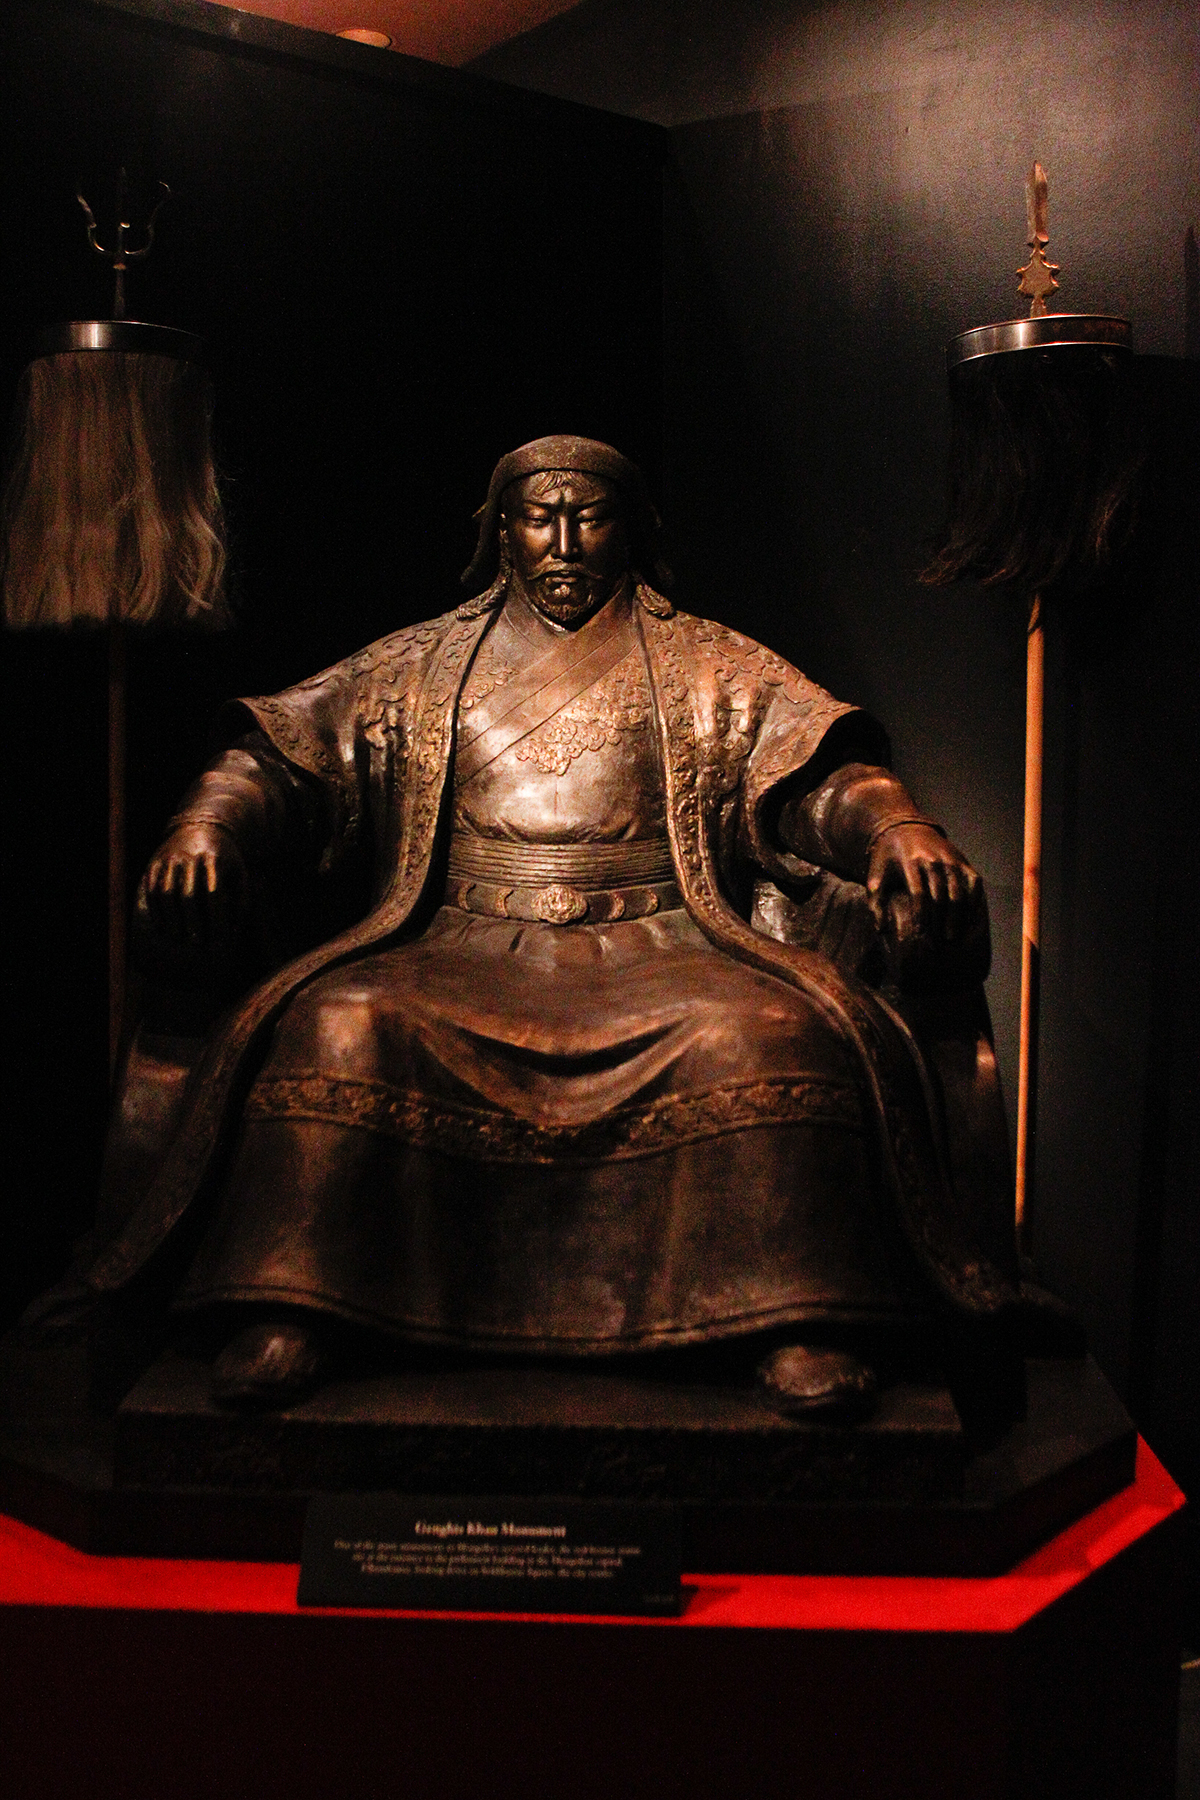 who is genghis khan before his fathers death Genghis khan, or ghengis khan as he is more widely known, was born about the year 1162 to a mongol chieftain, yesugei, and his wife he was born with the name of temujin, which means 'iron worker' in his native language.